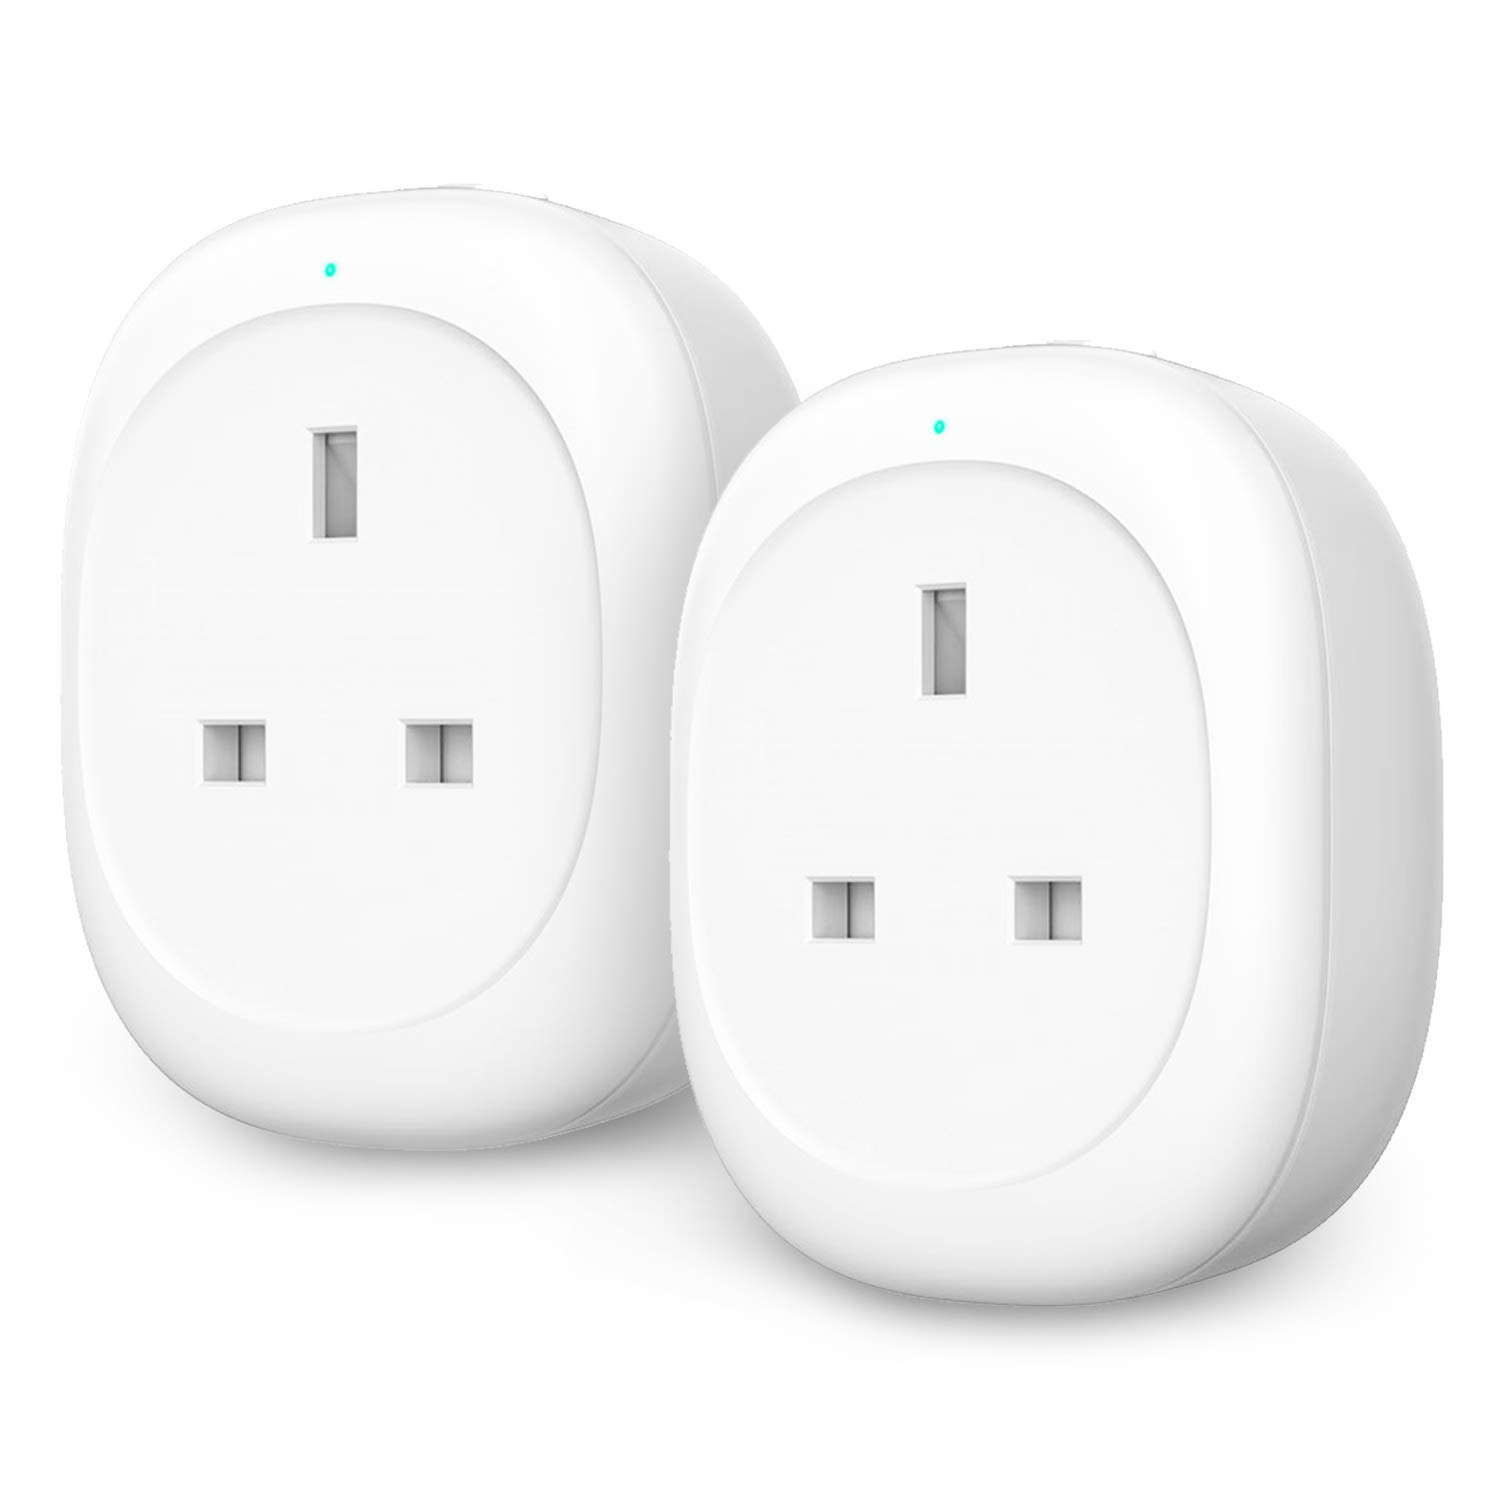 WiFi Smart Plug, Maxcio Smart Alexa Plug with Energy Monitoring, App Remote Control and Timer Function, Compatible with Alexa, Google Home and IFTTT, No Hub Required (1 Pack)